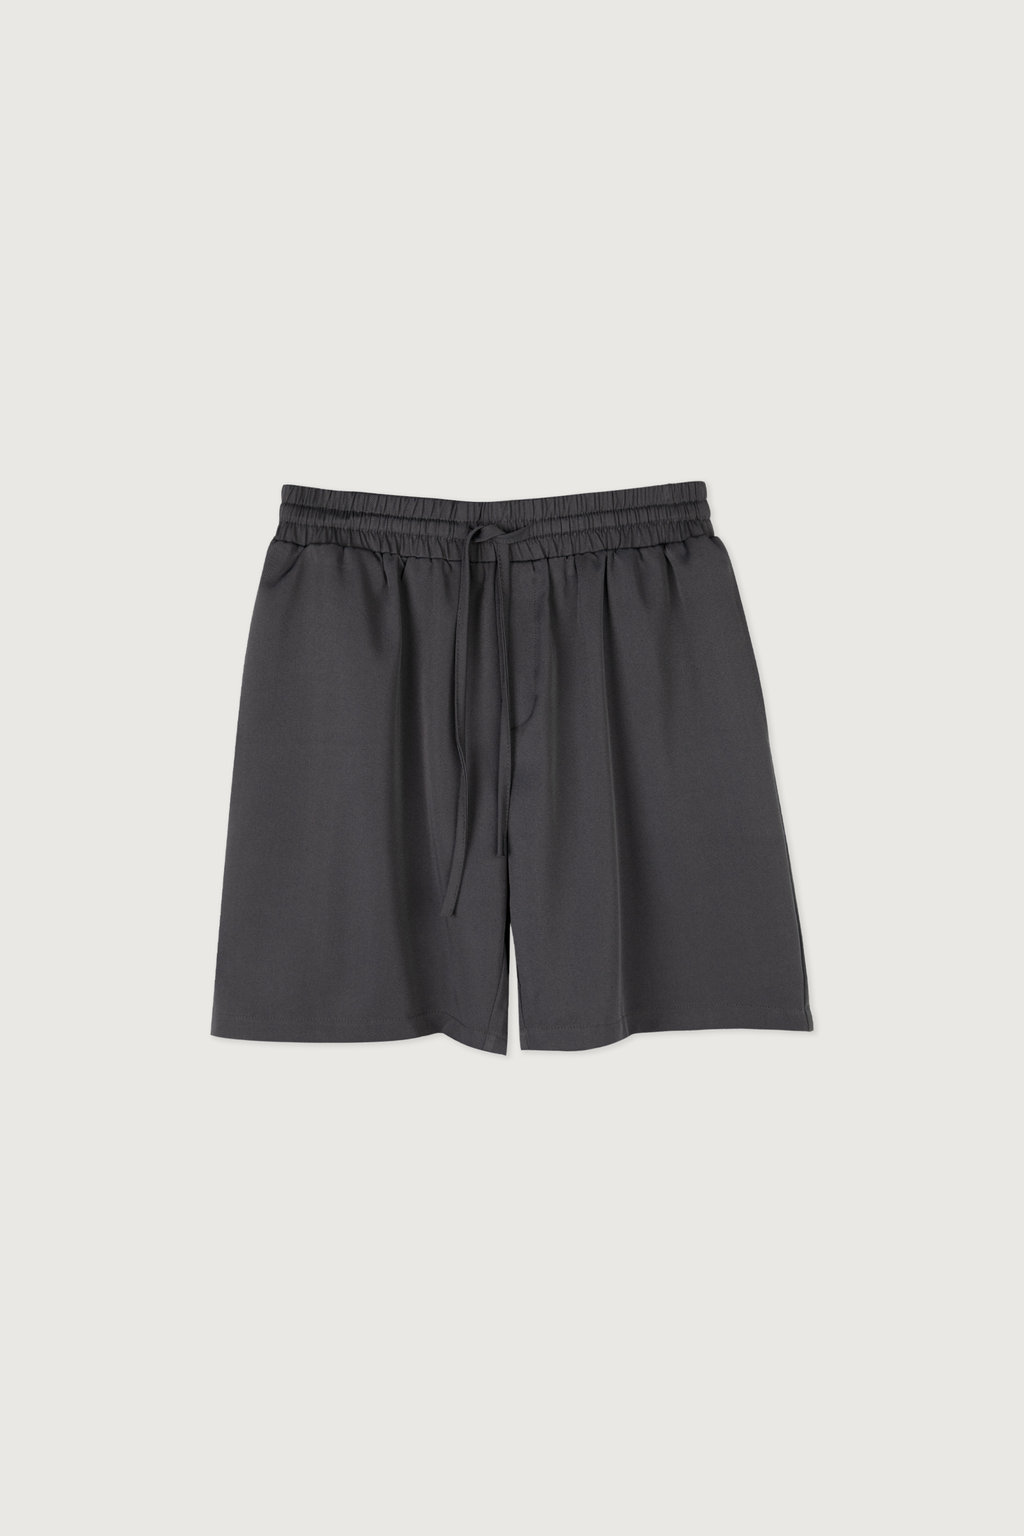 Short K001M Dark Gray 5